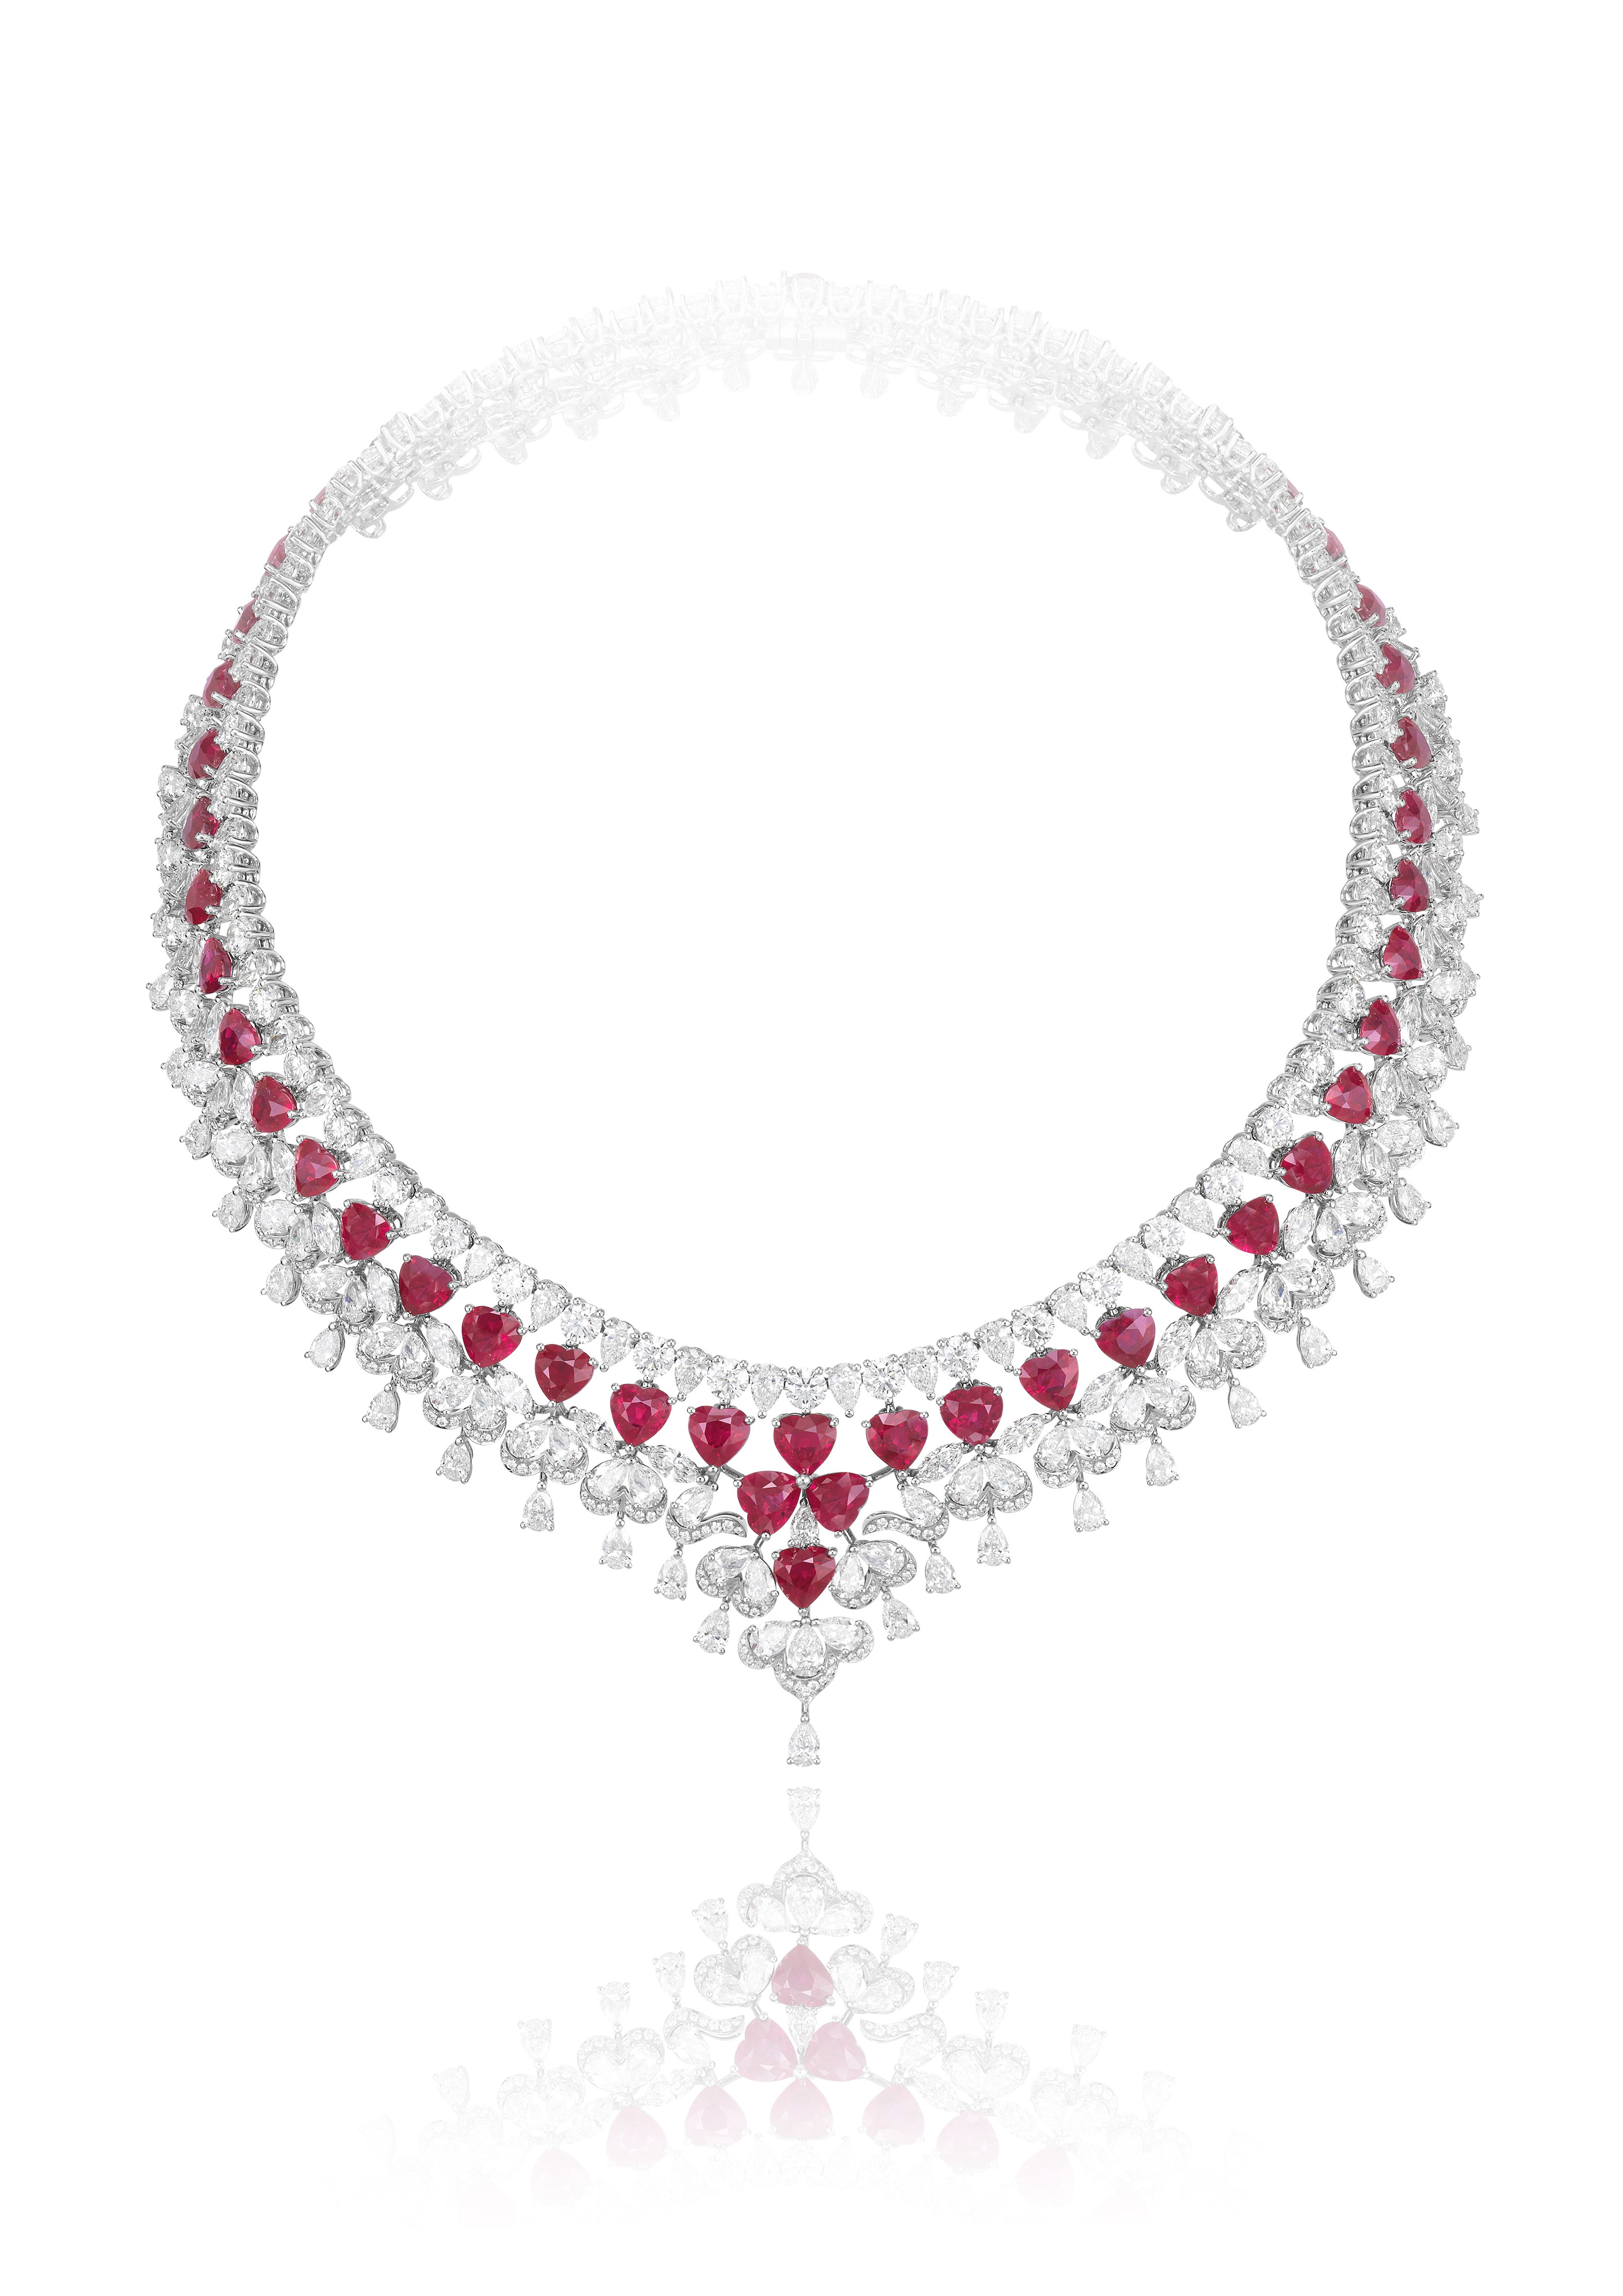 5 ruby statement jewellery pieces that sparkle in the crowd